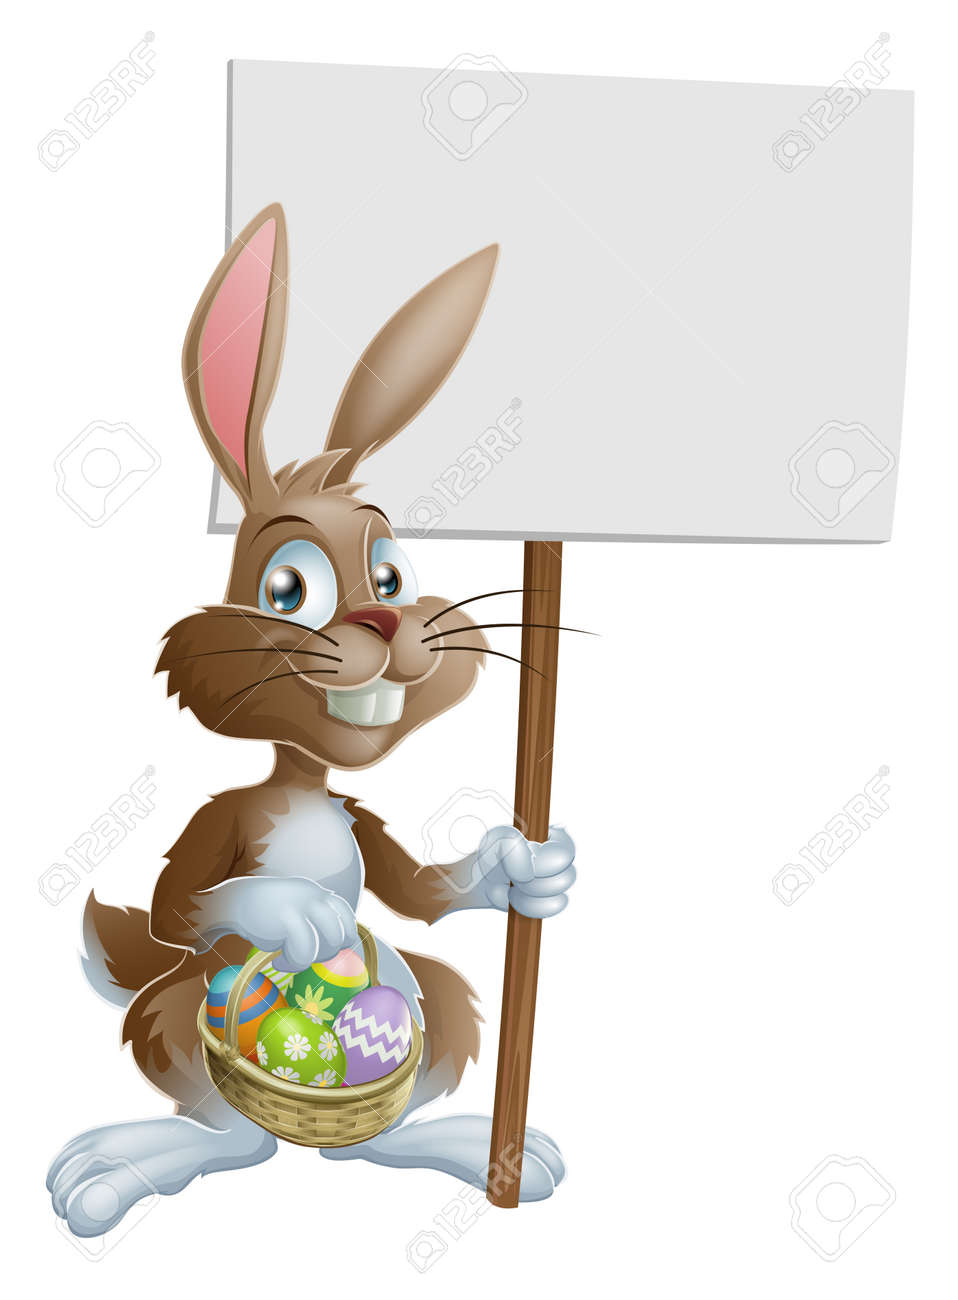 Easter Bunny Rabbit Holding A Basket Of Easter Eggs And A Sign Stock Vector  12808871